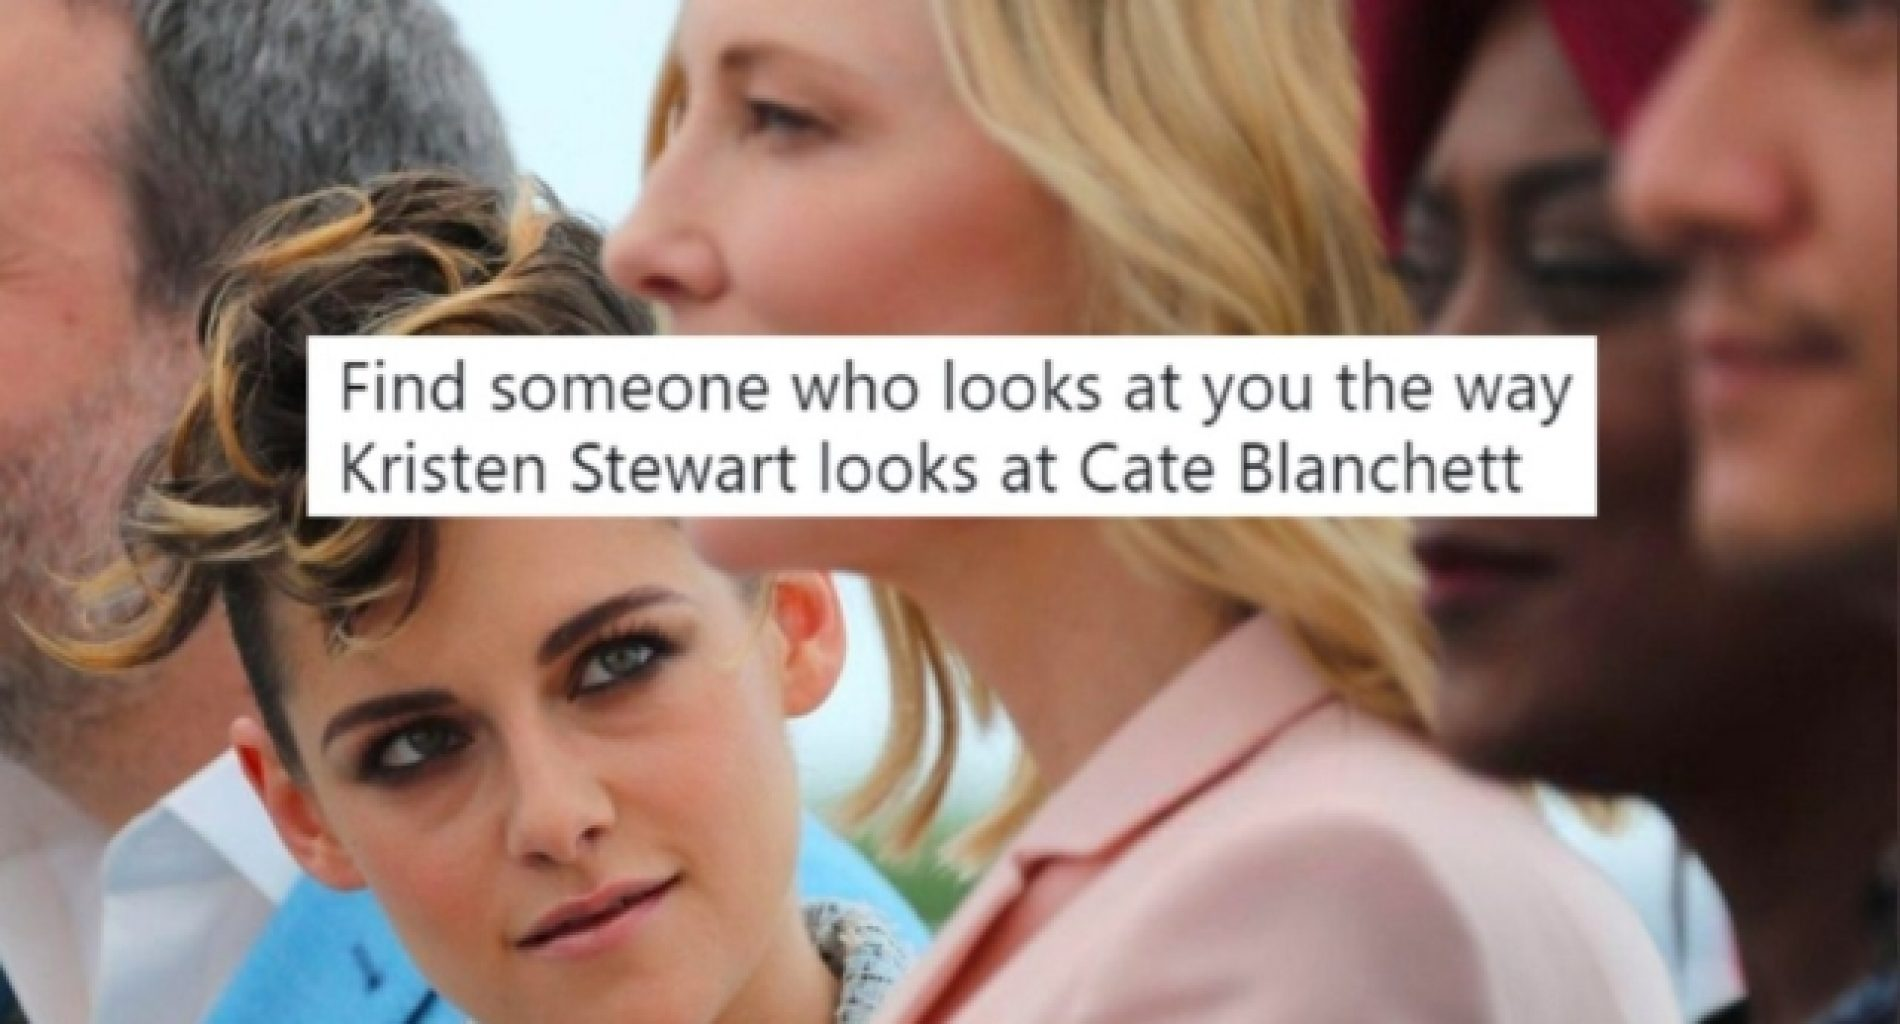 Kristen Stewart 'gayzed' at Cate Blanchett and the internet can't get enough of it